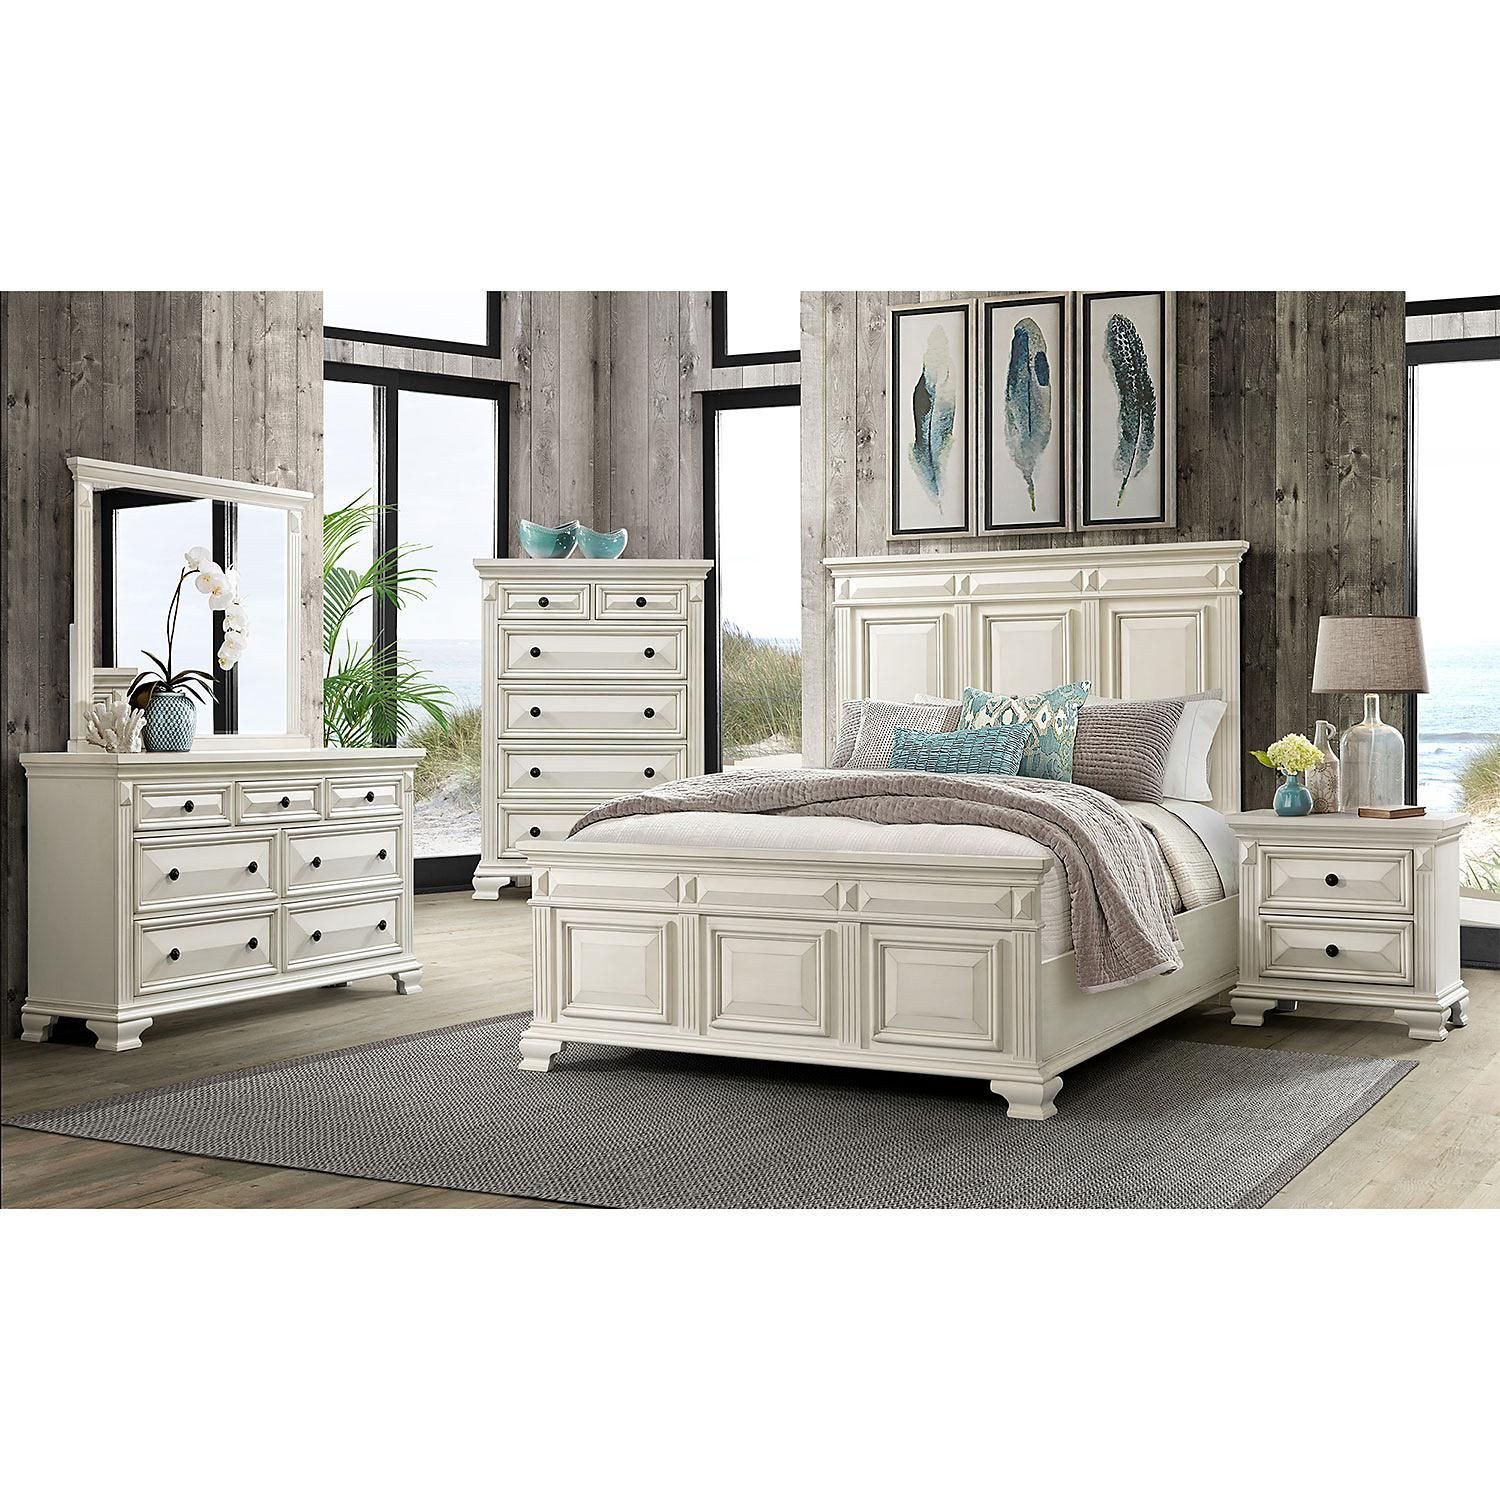 Full Size Bedroom Furniture Set Elegant $1599 00 society Den Trent Panel 6 Piece King Bedroom Set